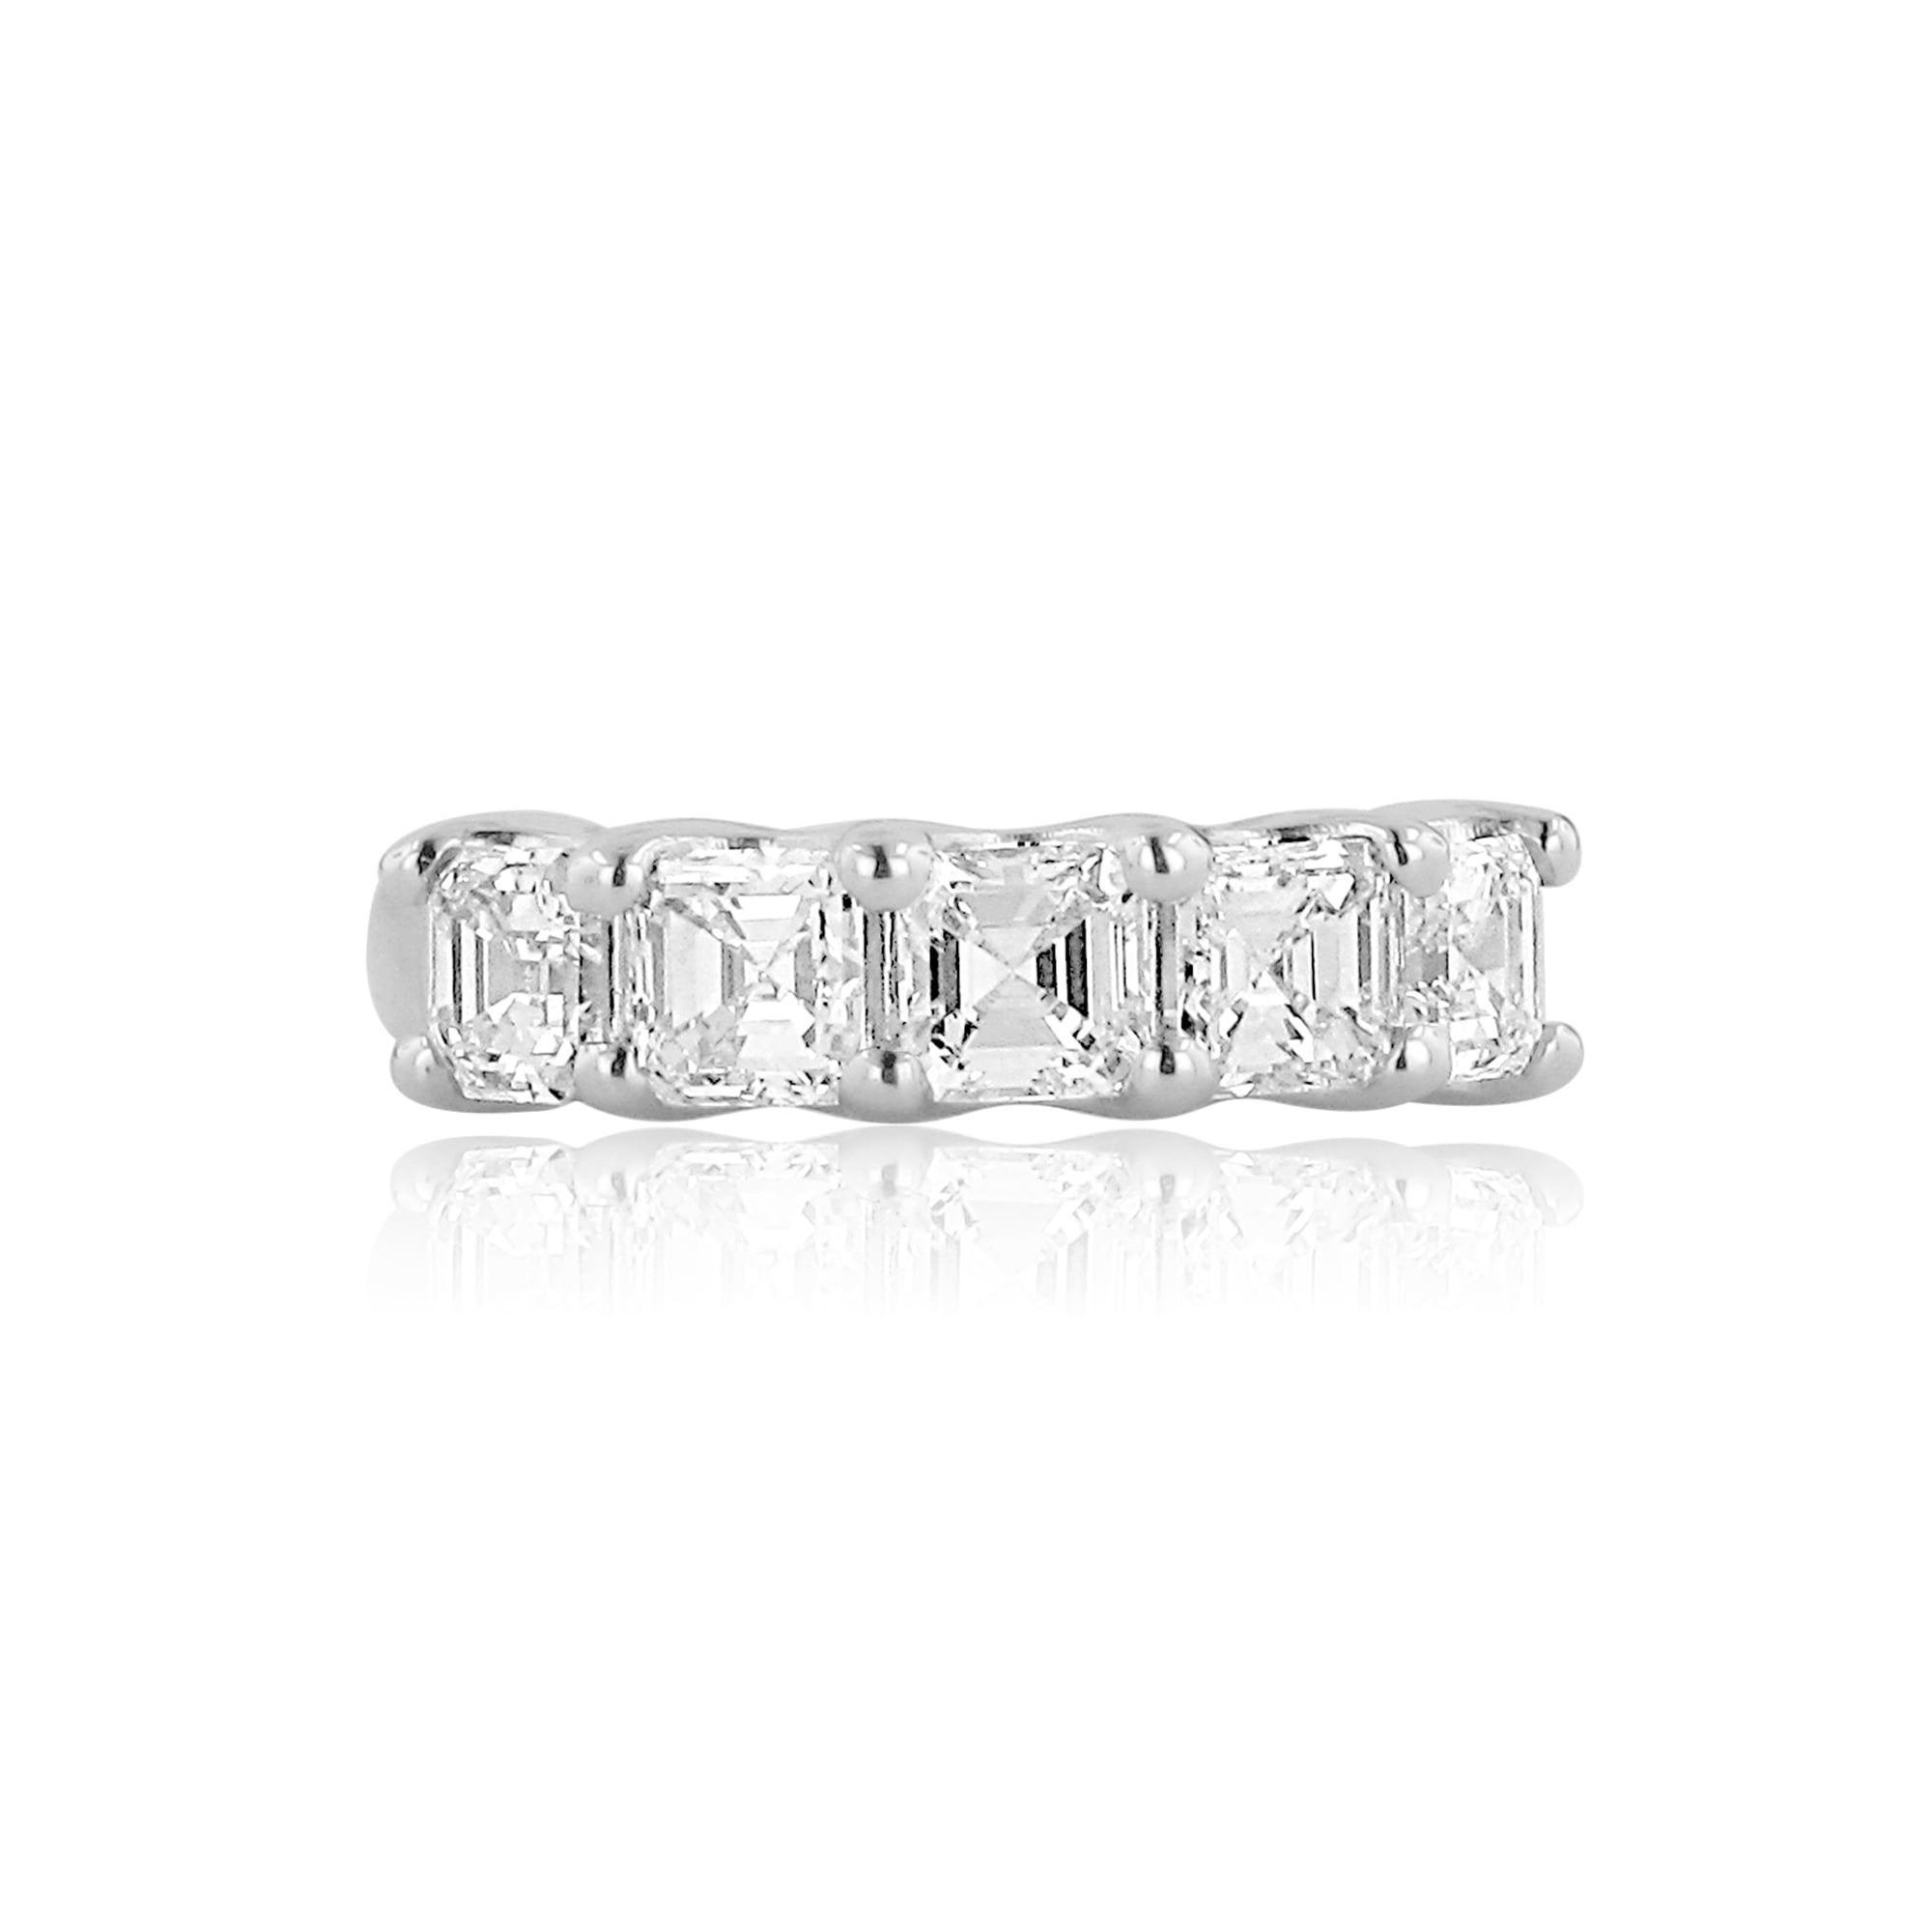 sterling engagement overstock rings shipping asscher free jewellery suzy halo jewelry ring levian zirconia rose product white brown today watches silver cubic cut